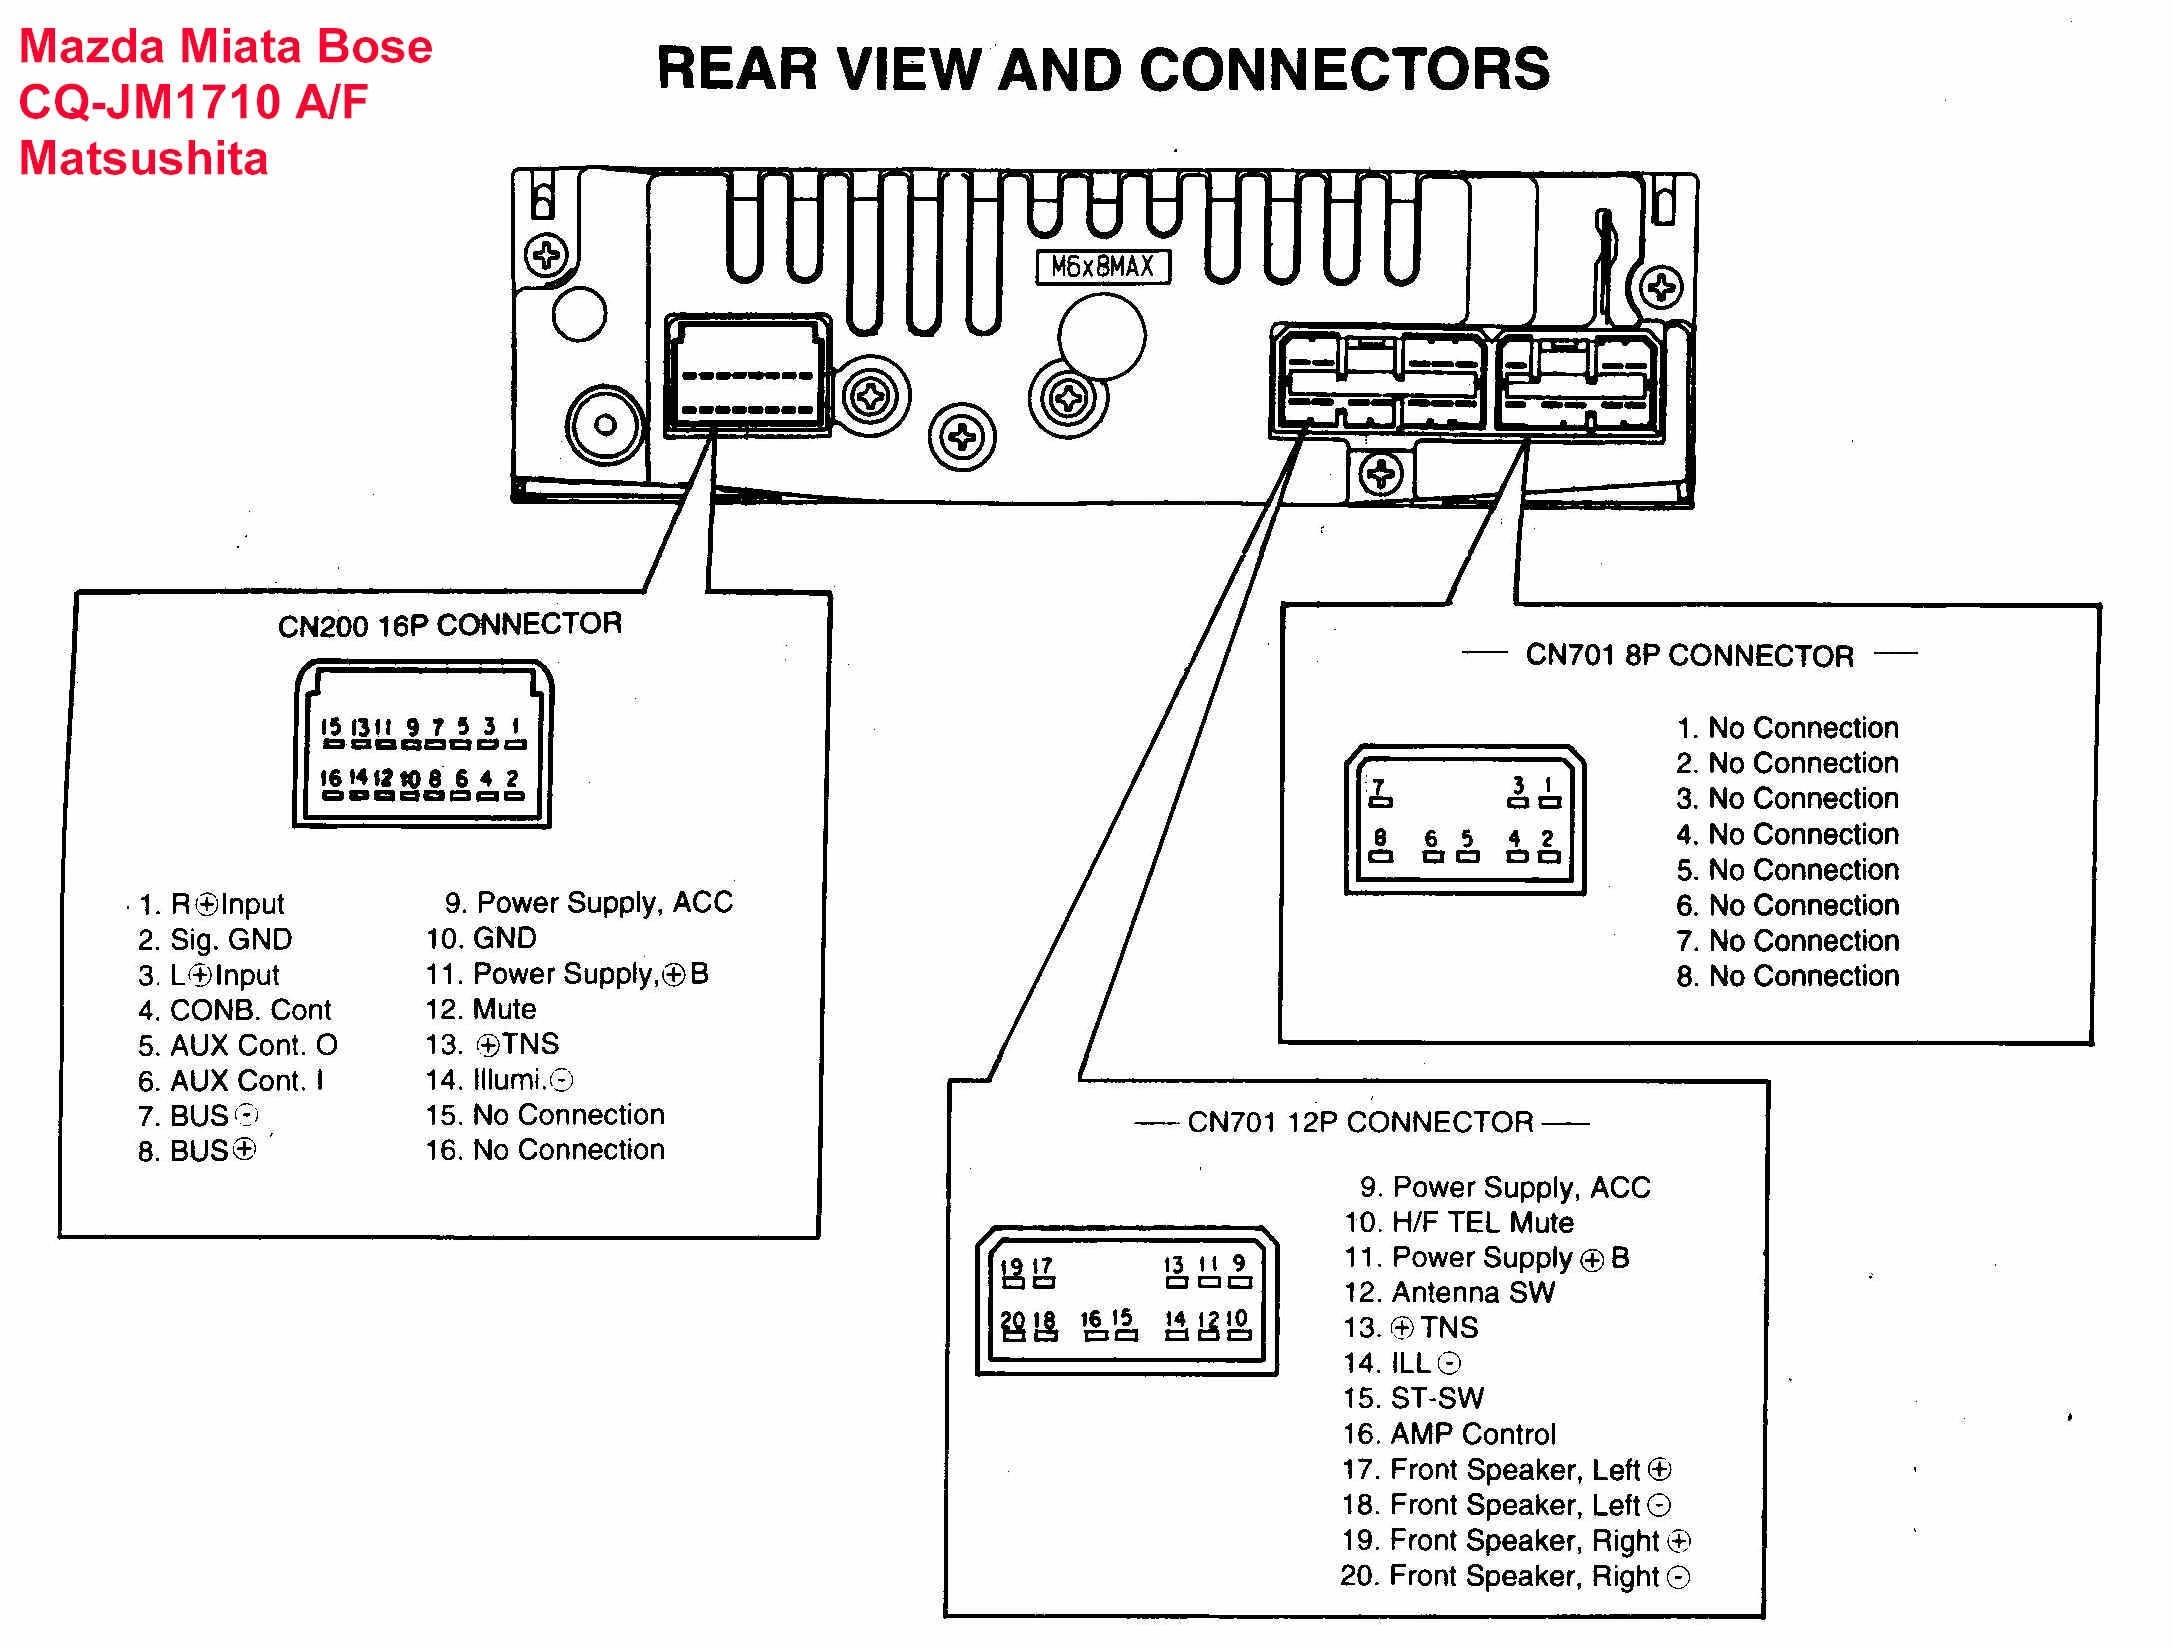 Wiring Diagram 1990 Club Car Golf Cart Save Mazda Mpv Wiring Diagram Mpv  Mirror Wiring Diagram